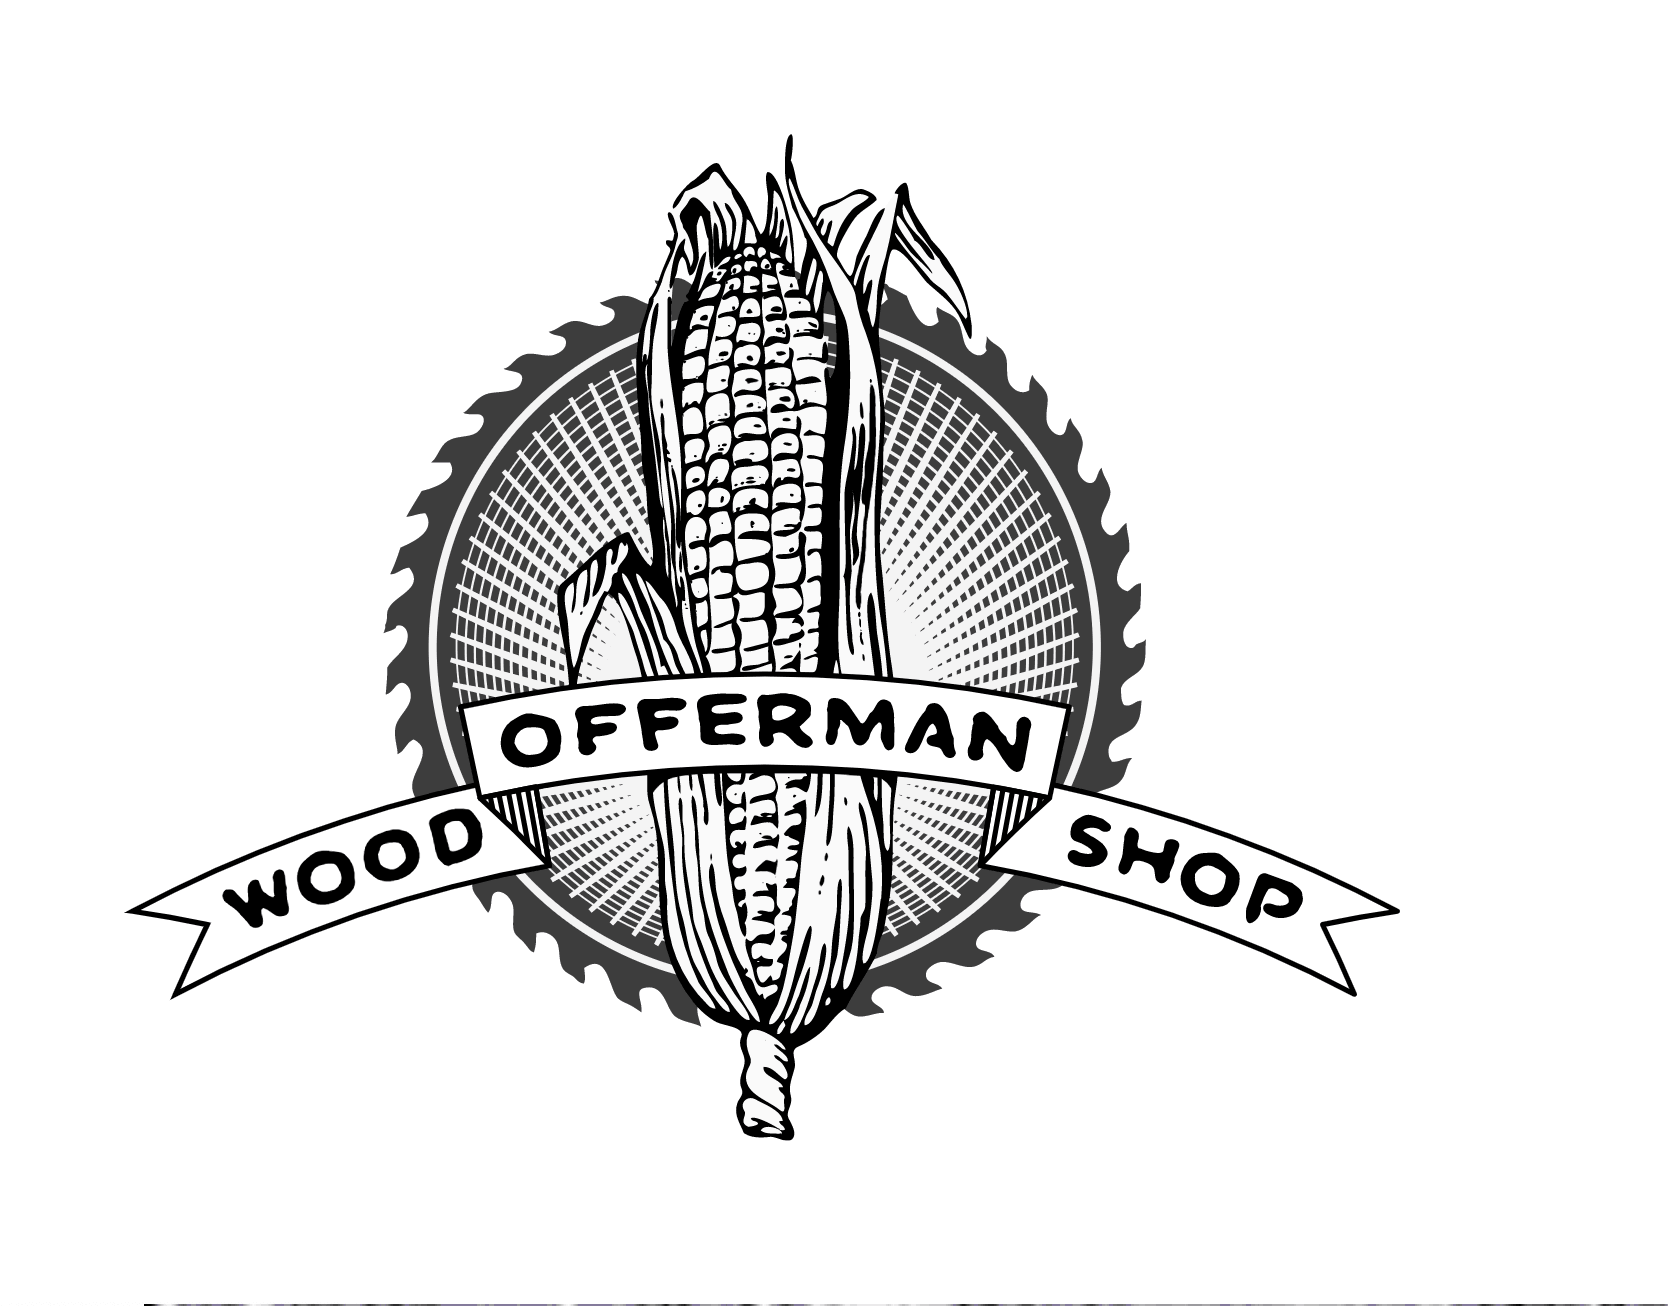 Woodworker logo: Offerman Wood Shop